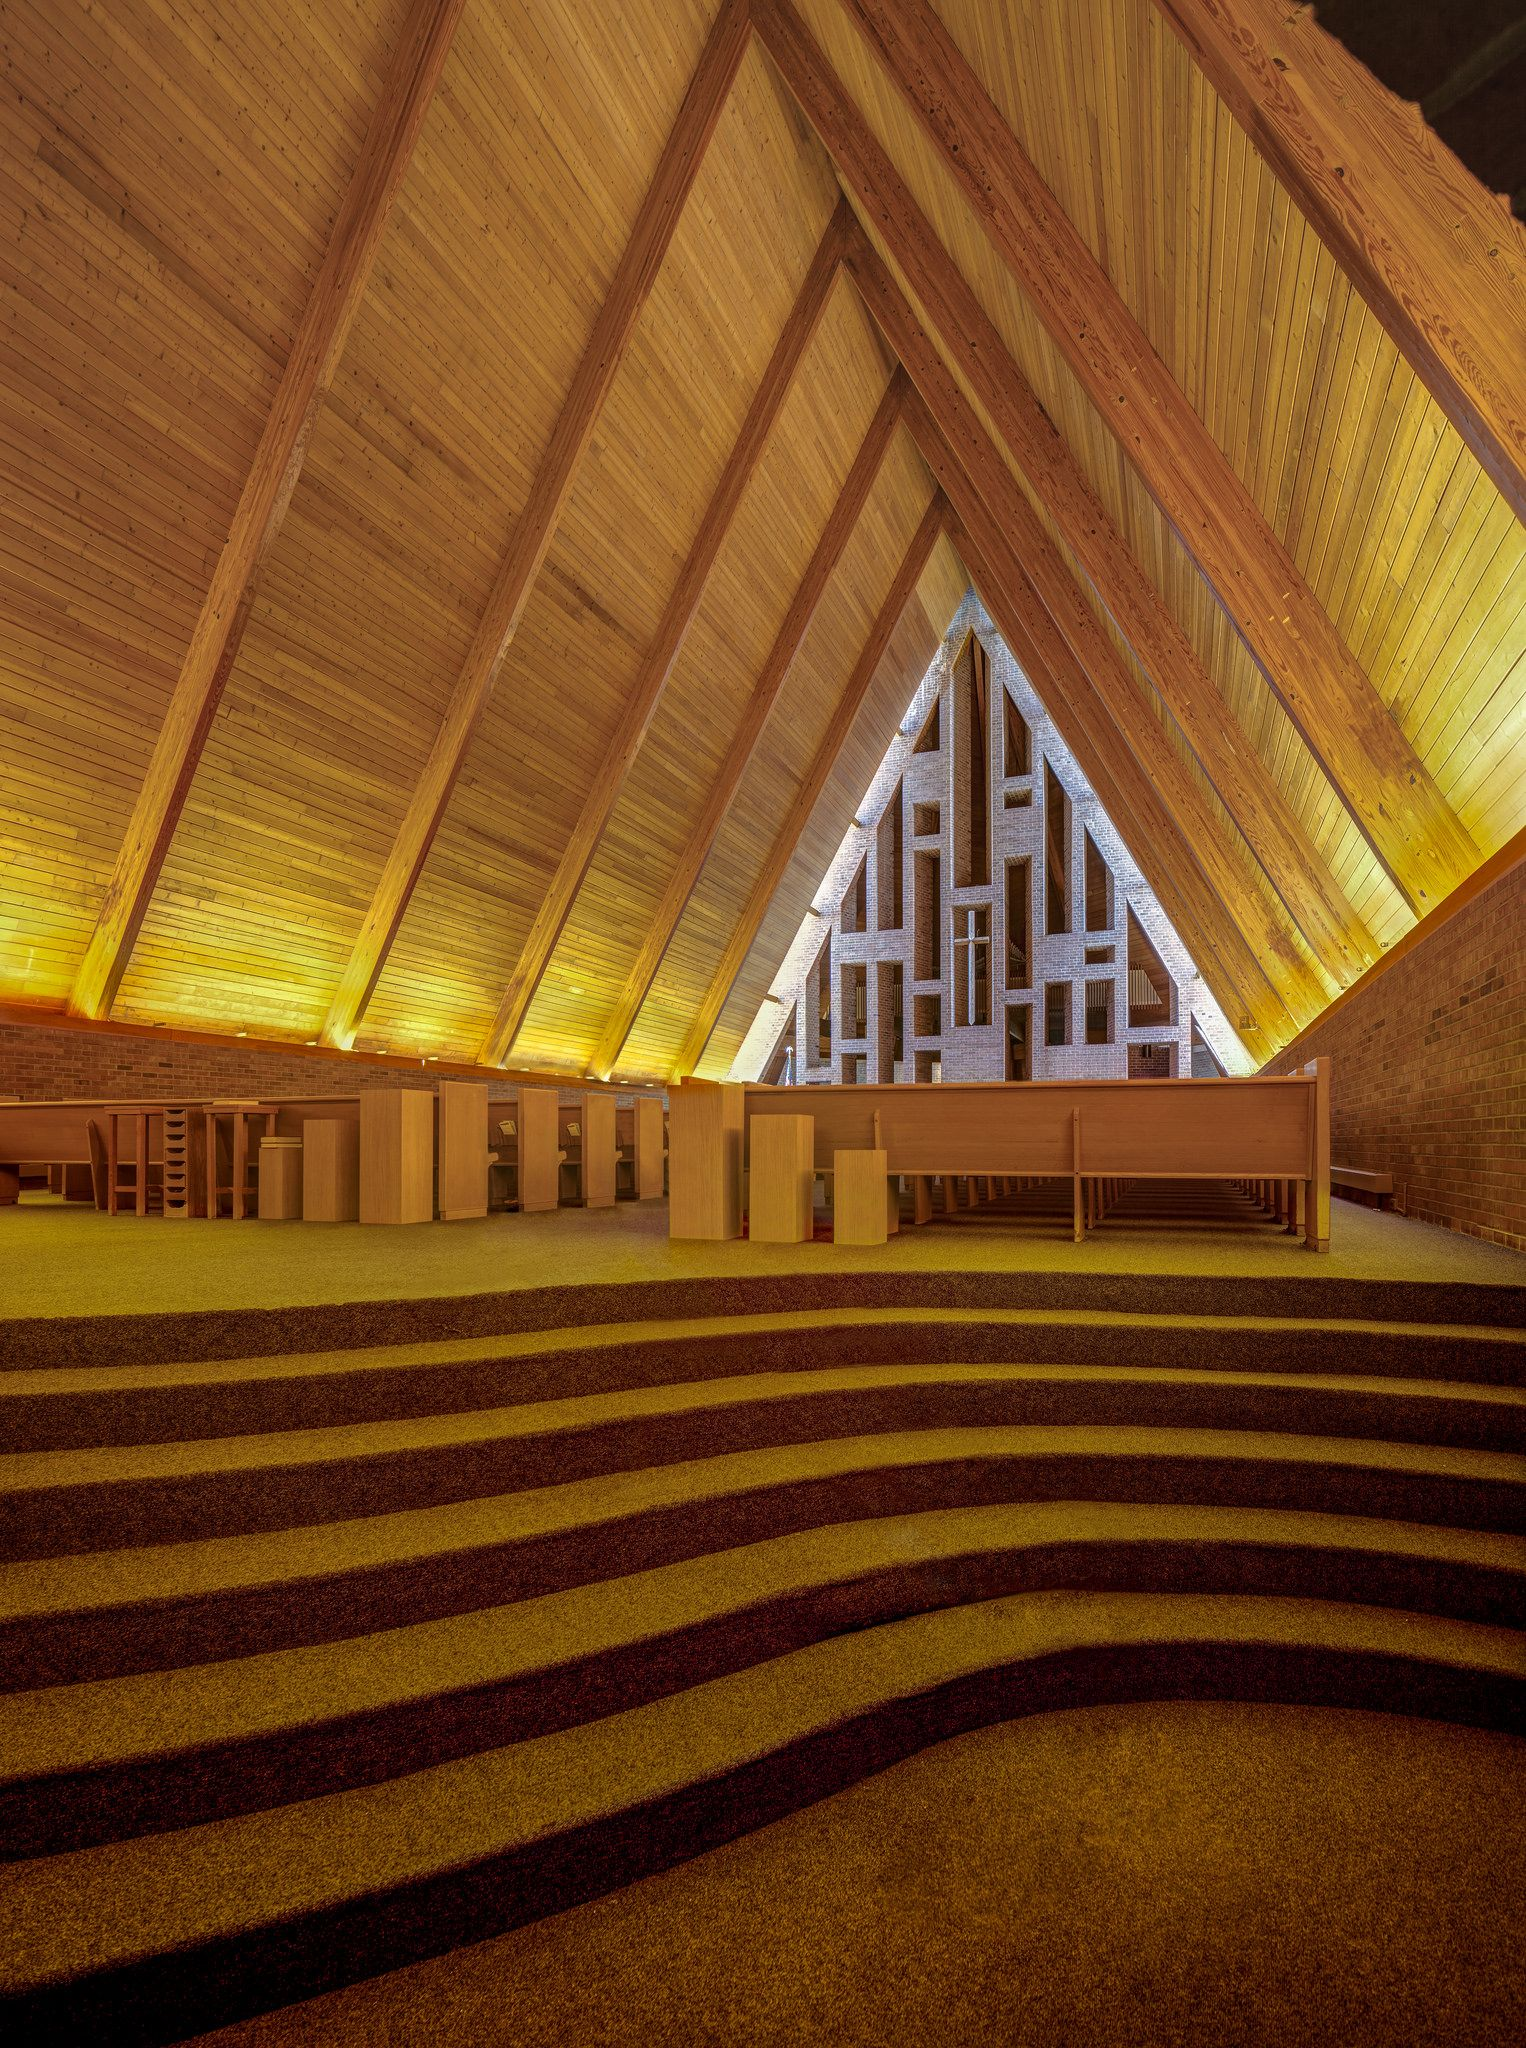 https://flic.kr/p/nh9isi | First Baptist Church | Architect: Harry Weese (1965) Location: Columbus, IN